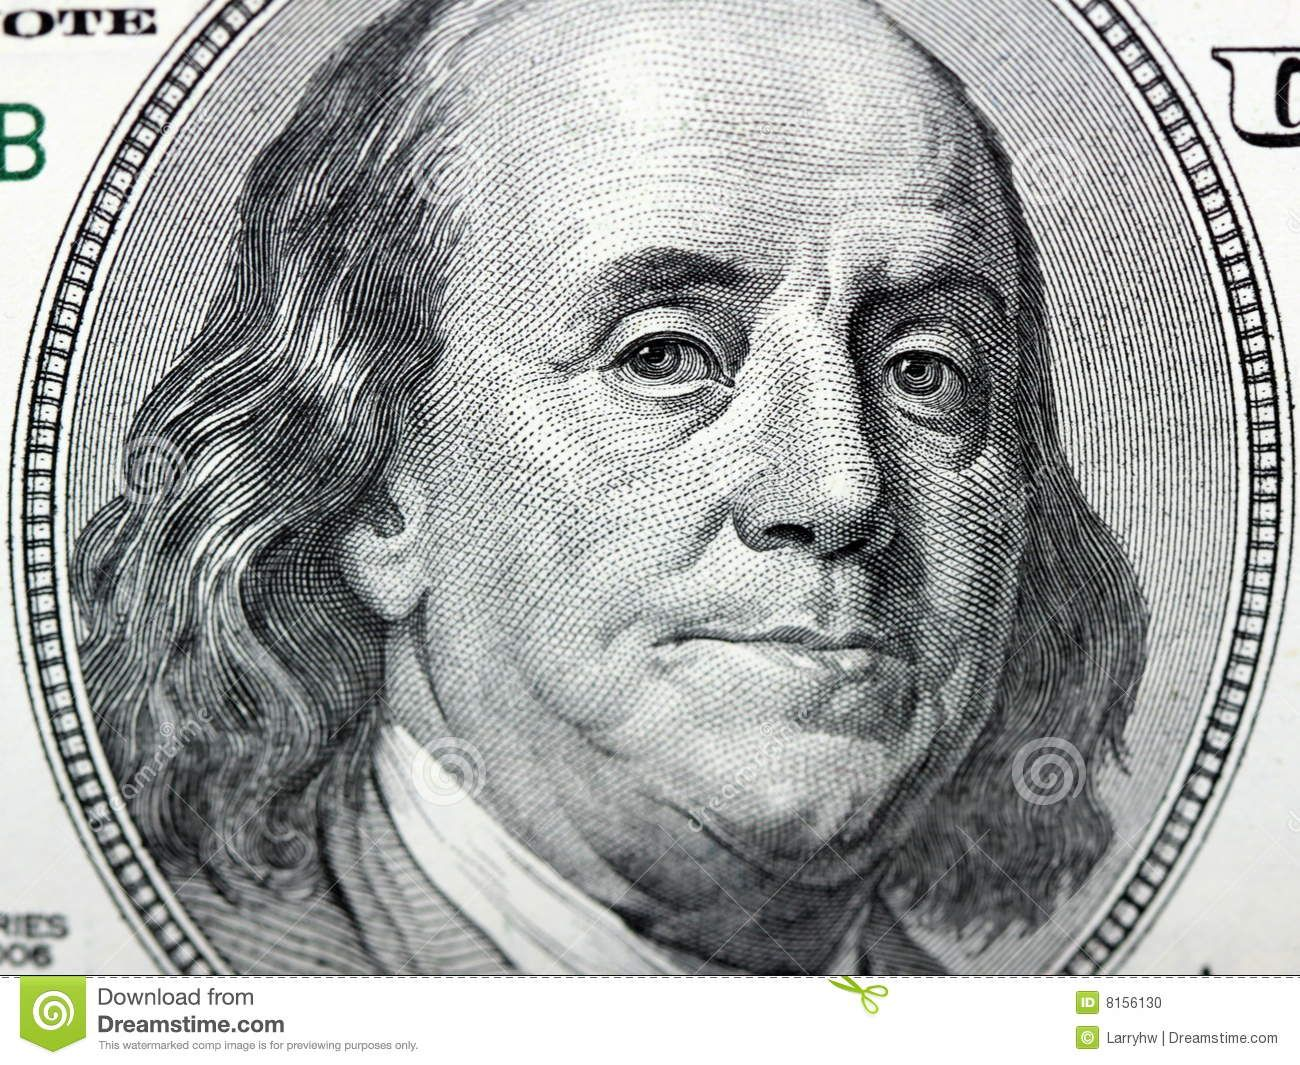 franklin essay But few know about the essay benjamin franklin wrote in 1781 about a peculiar issue: farting while some people are aware of benjamin franklin's flatulence essay, very few people know why he wrote it.